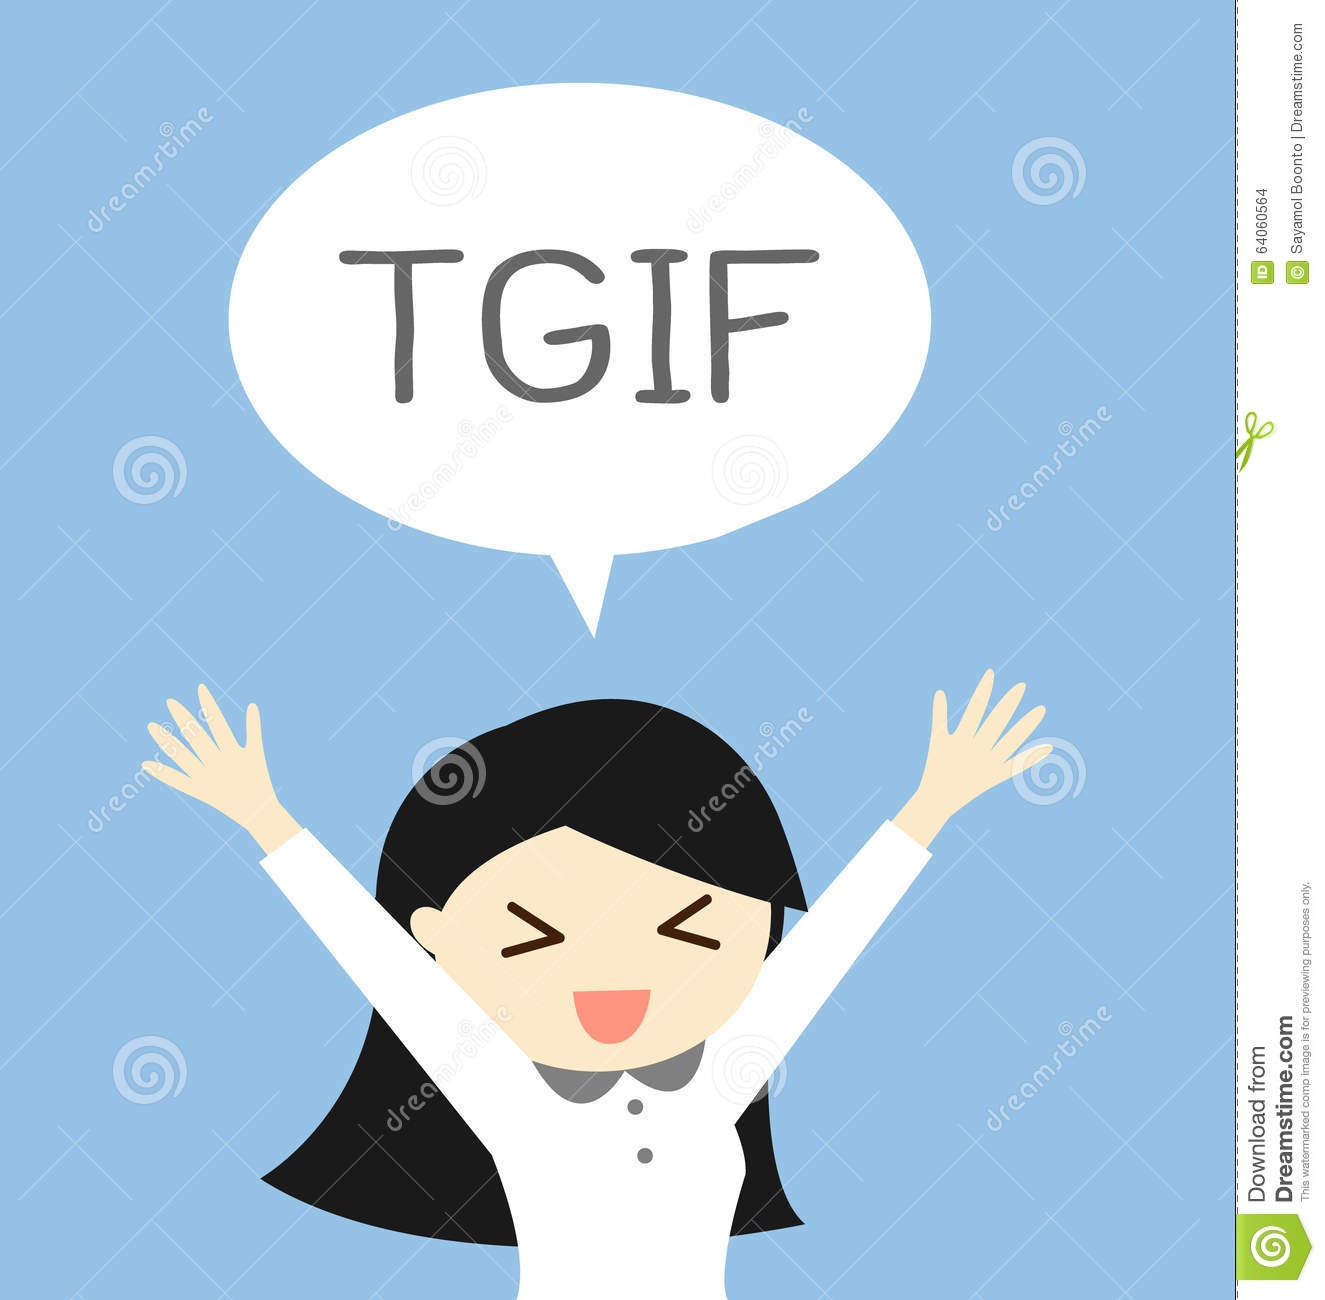 Business Concept Thank God It S Friday Or Tgif With A Woman In Feeling Happy And Relax Vector Illustration Stock Vector Illustration Of Character Flat 64060564